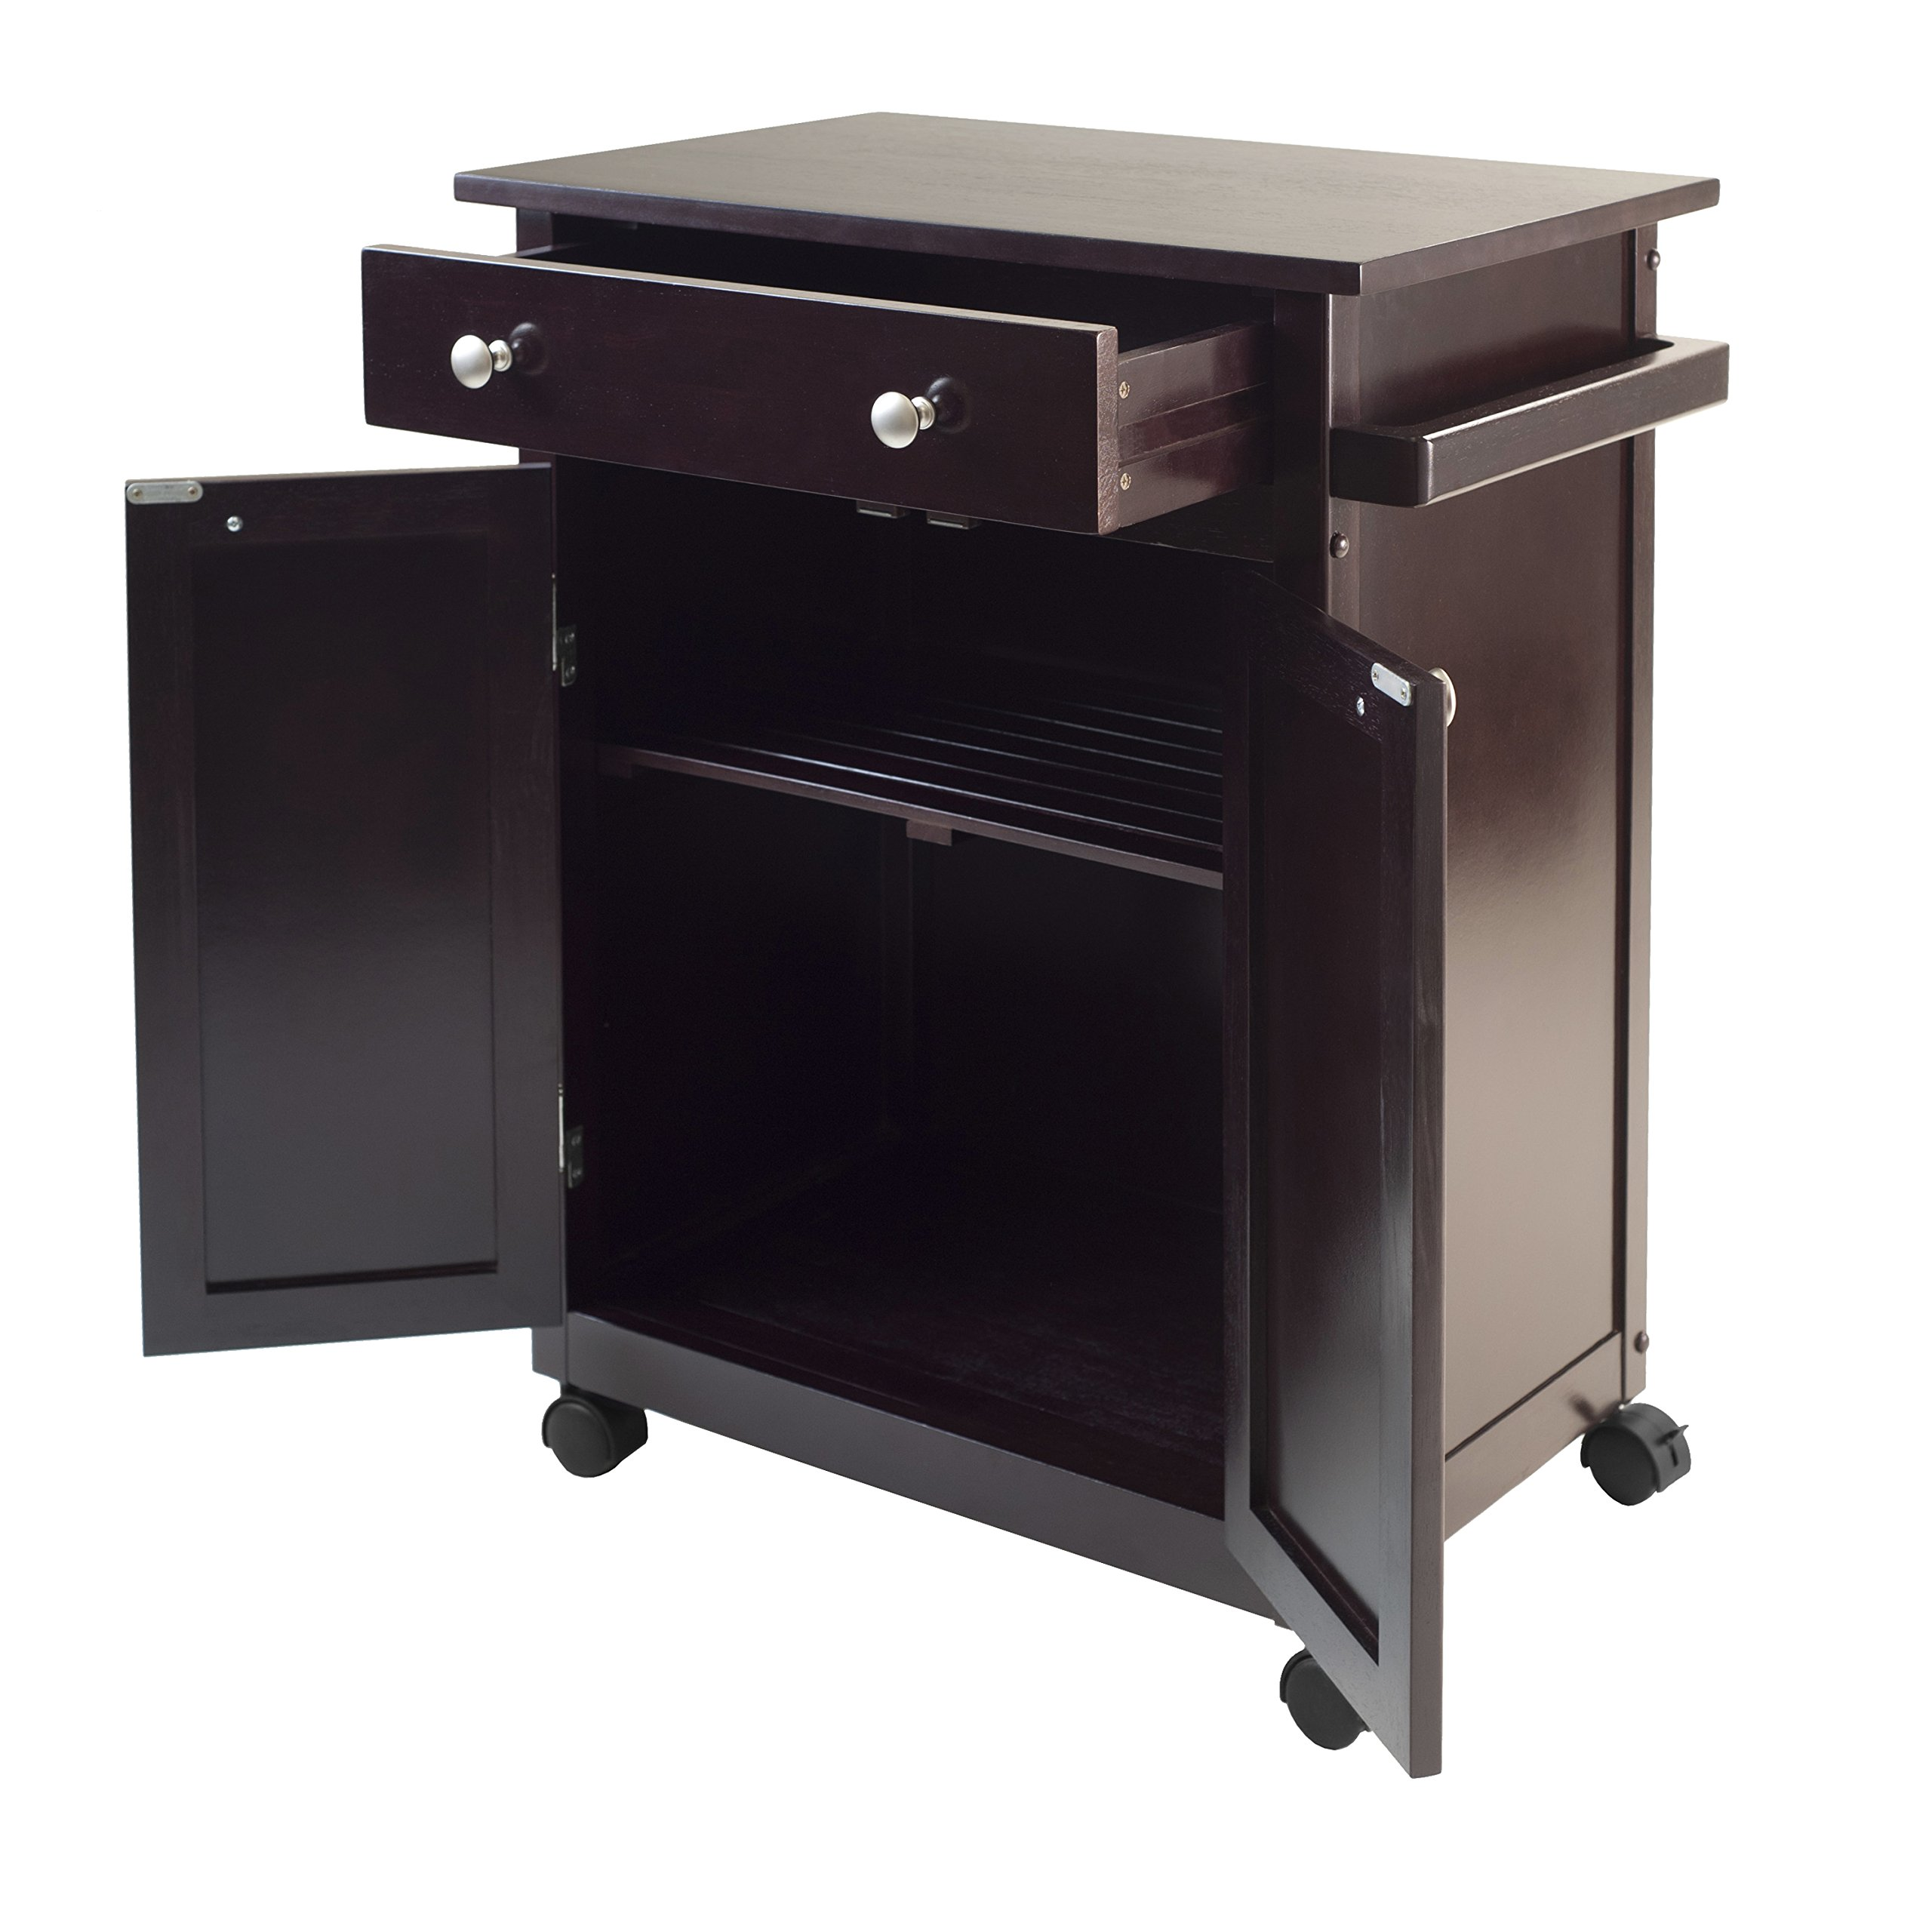 Winsome 92626 Savannah Kitchen, Espresso by Winsome (Image #2)